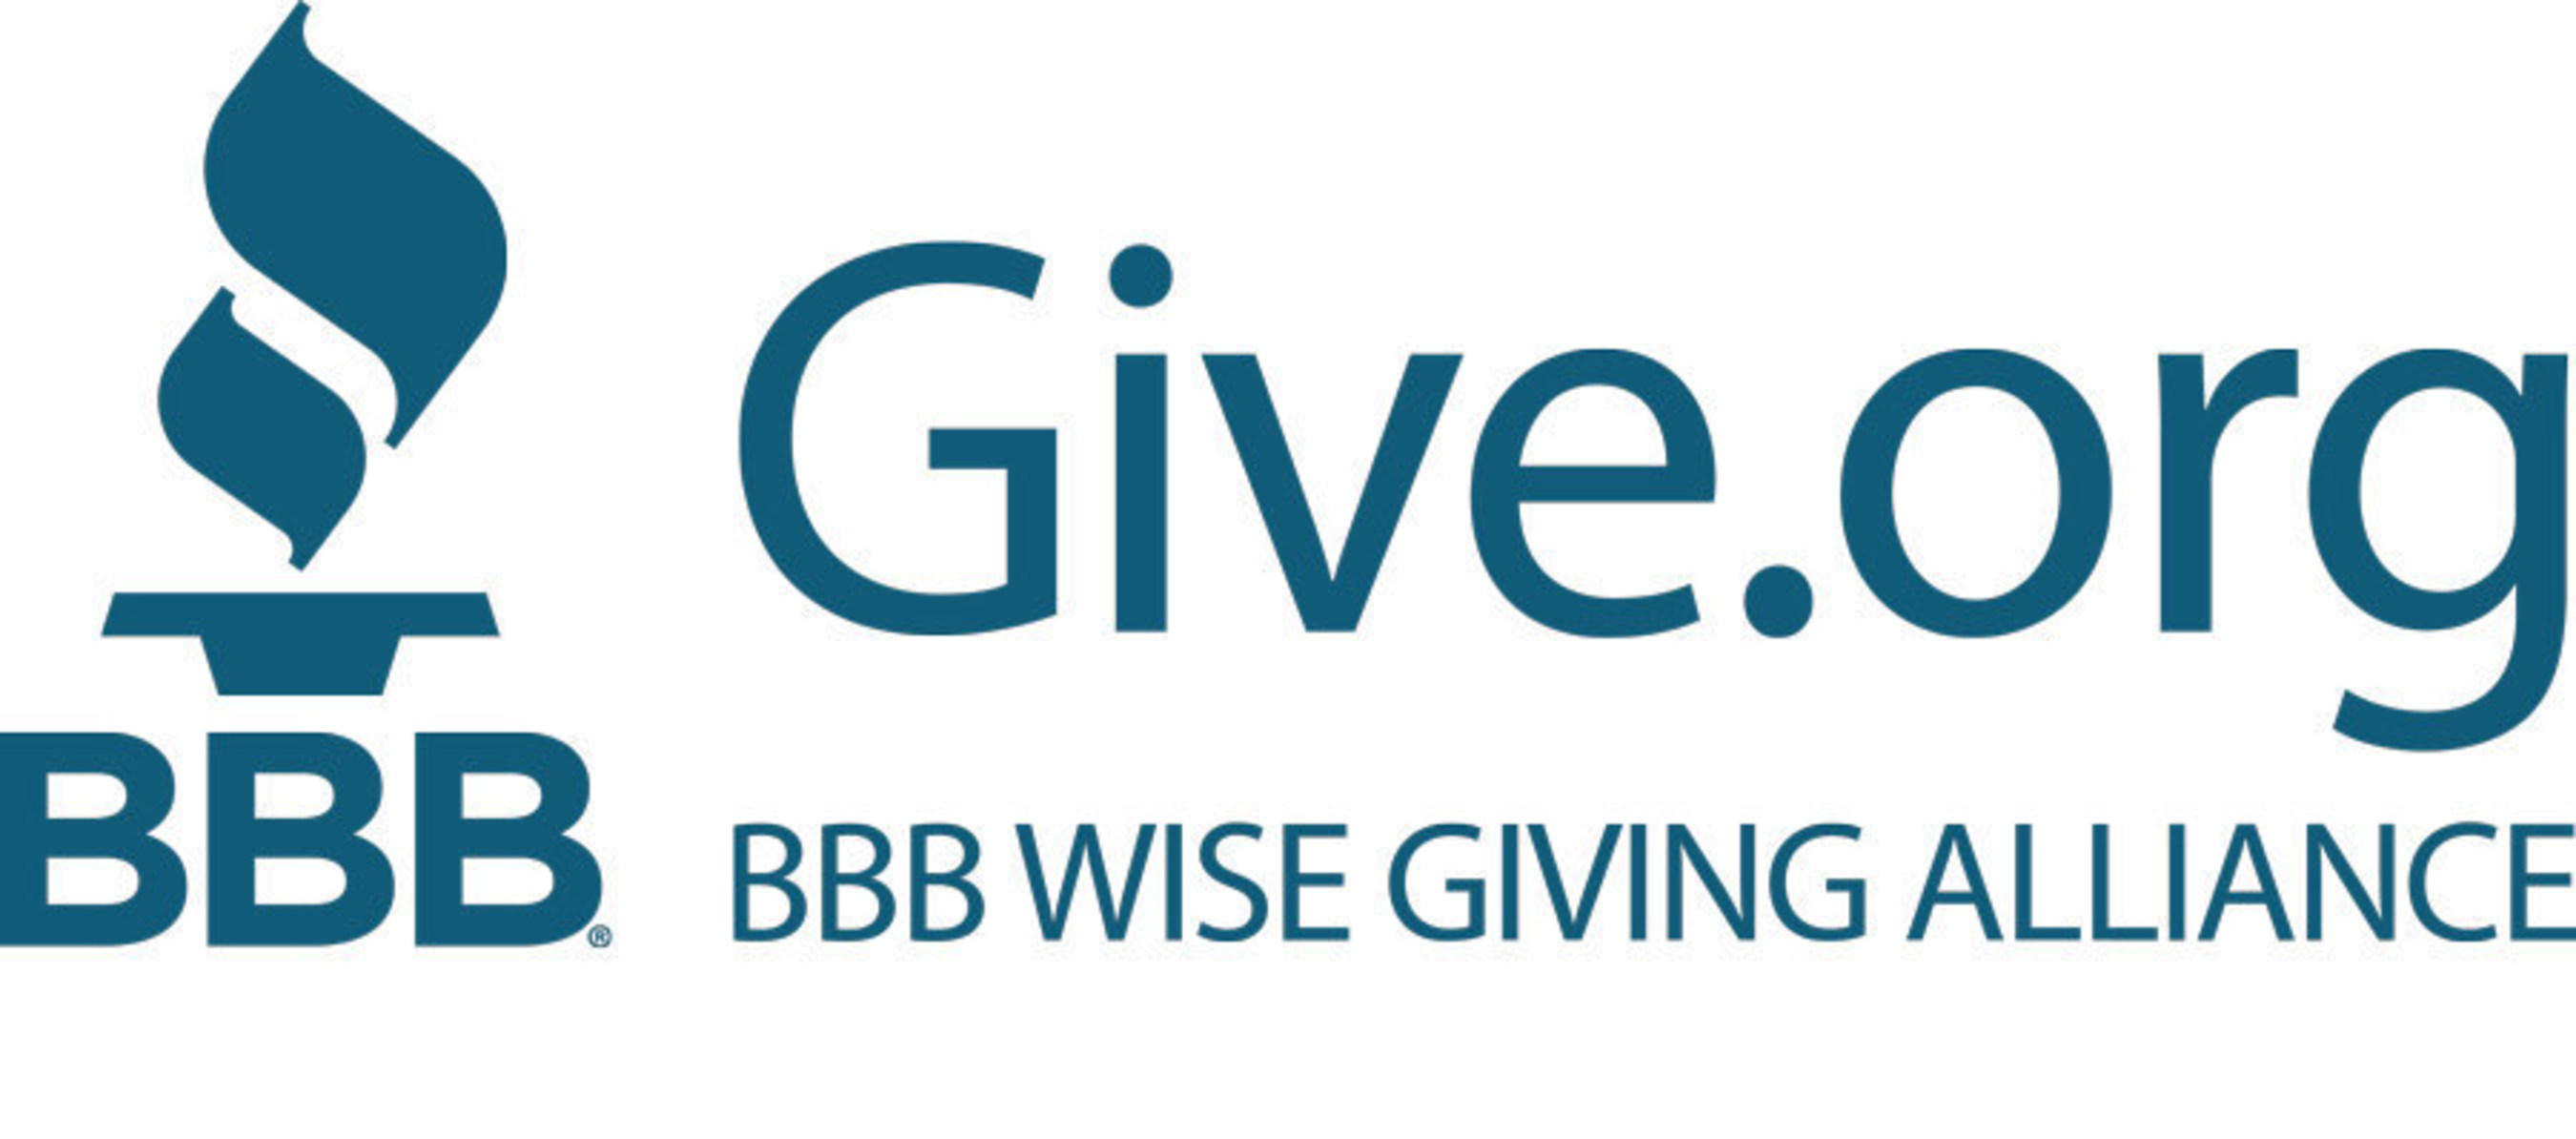 BBB Wise Giving Alliance logo